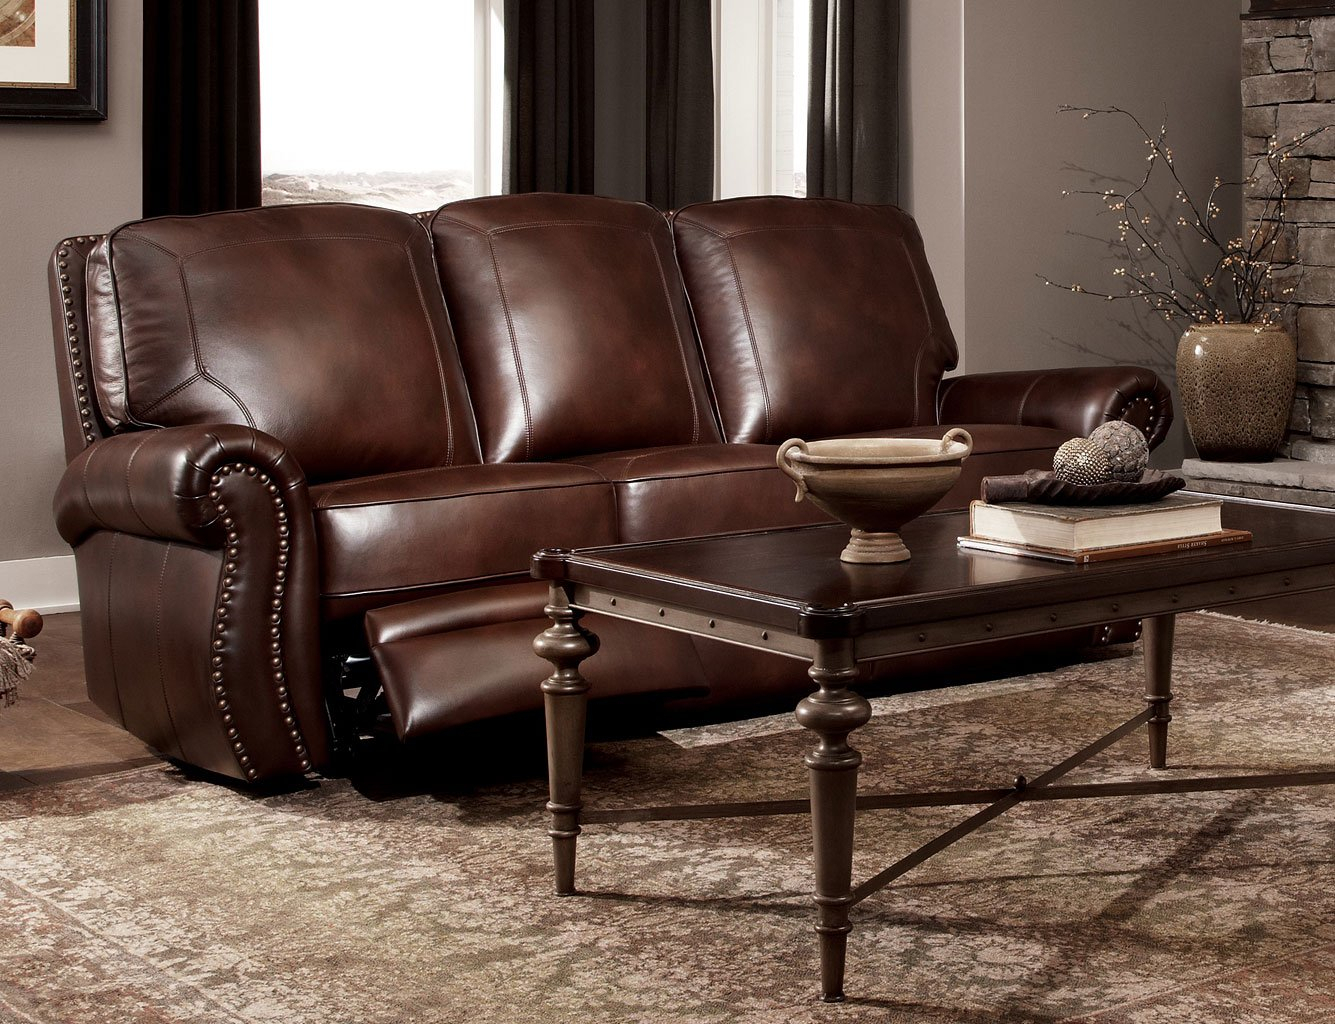 Carress 07 Power Reclining Sofa Craftmaster | Furniture Cart Within Raven Power Reclining Sofas (View 5 of 15)